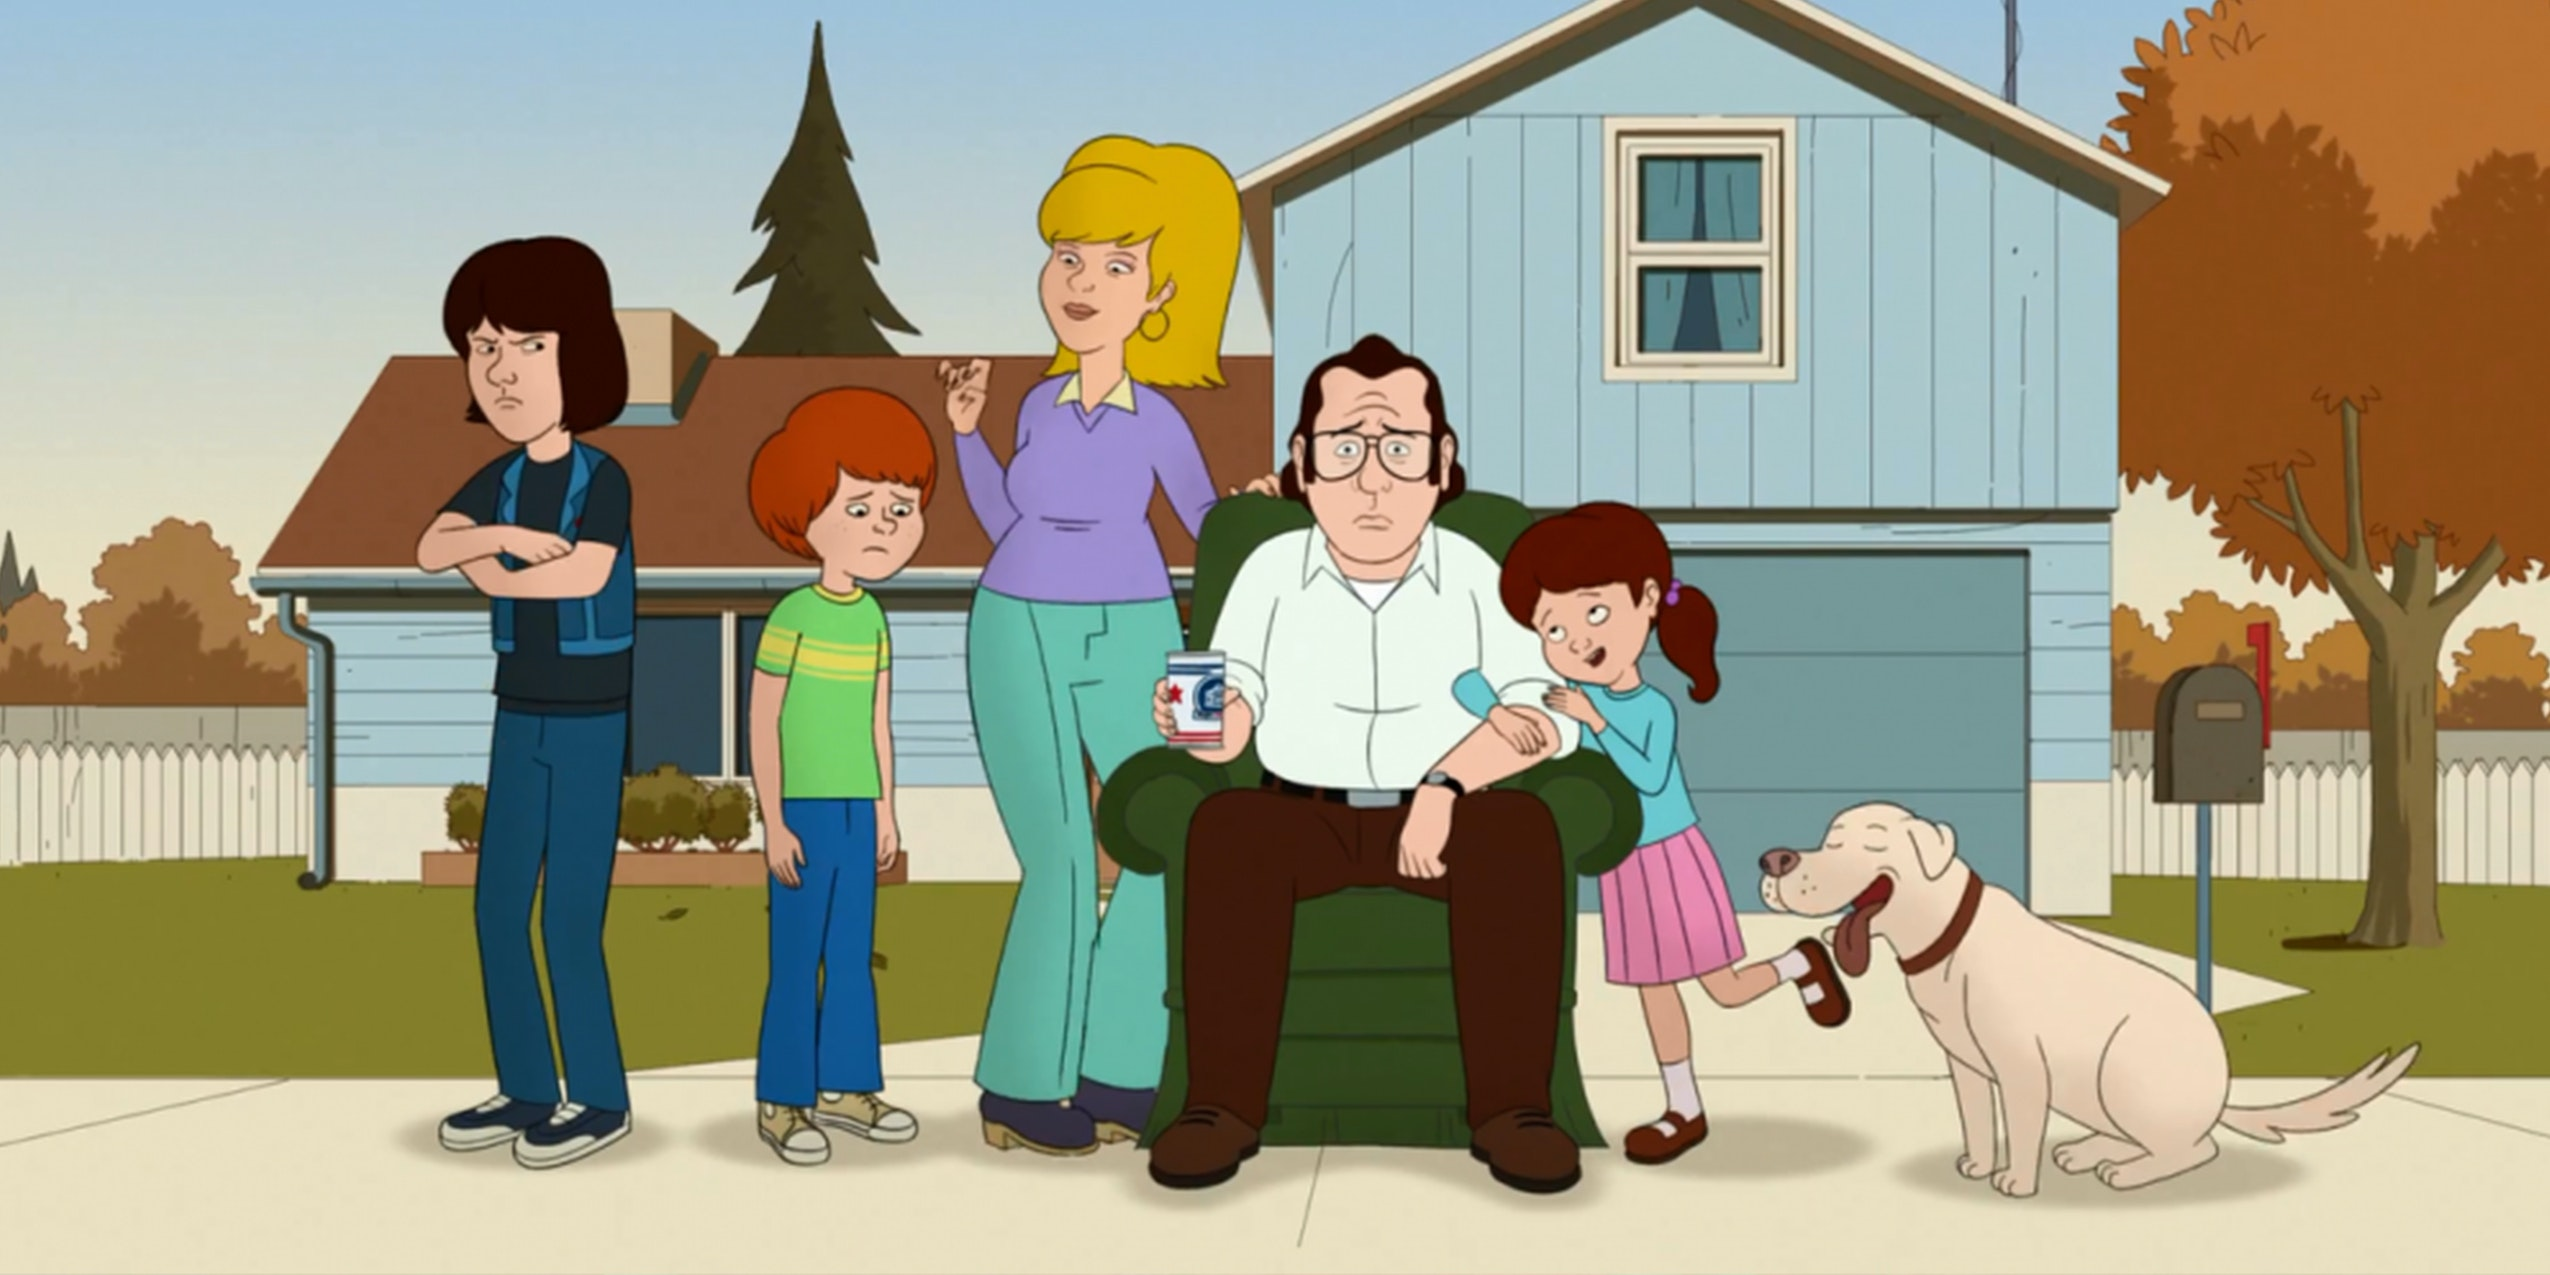 f is for family Netflix original series